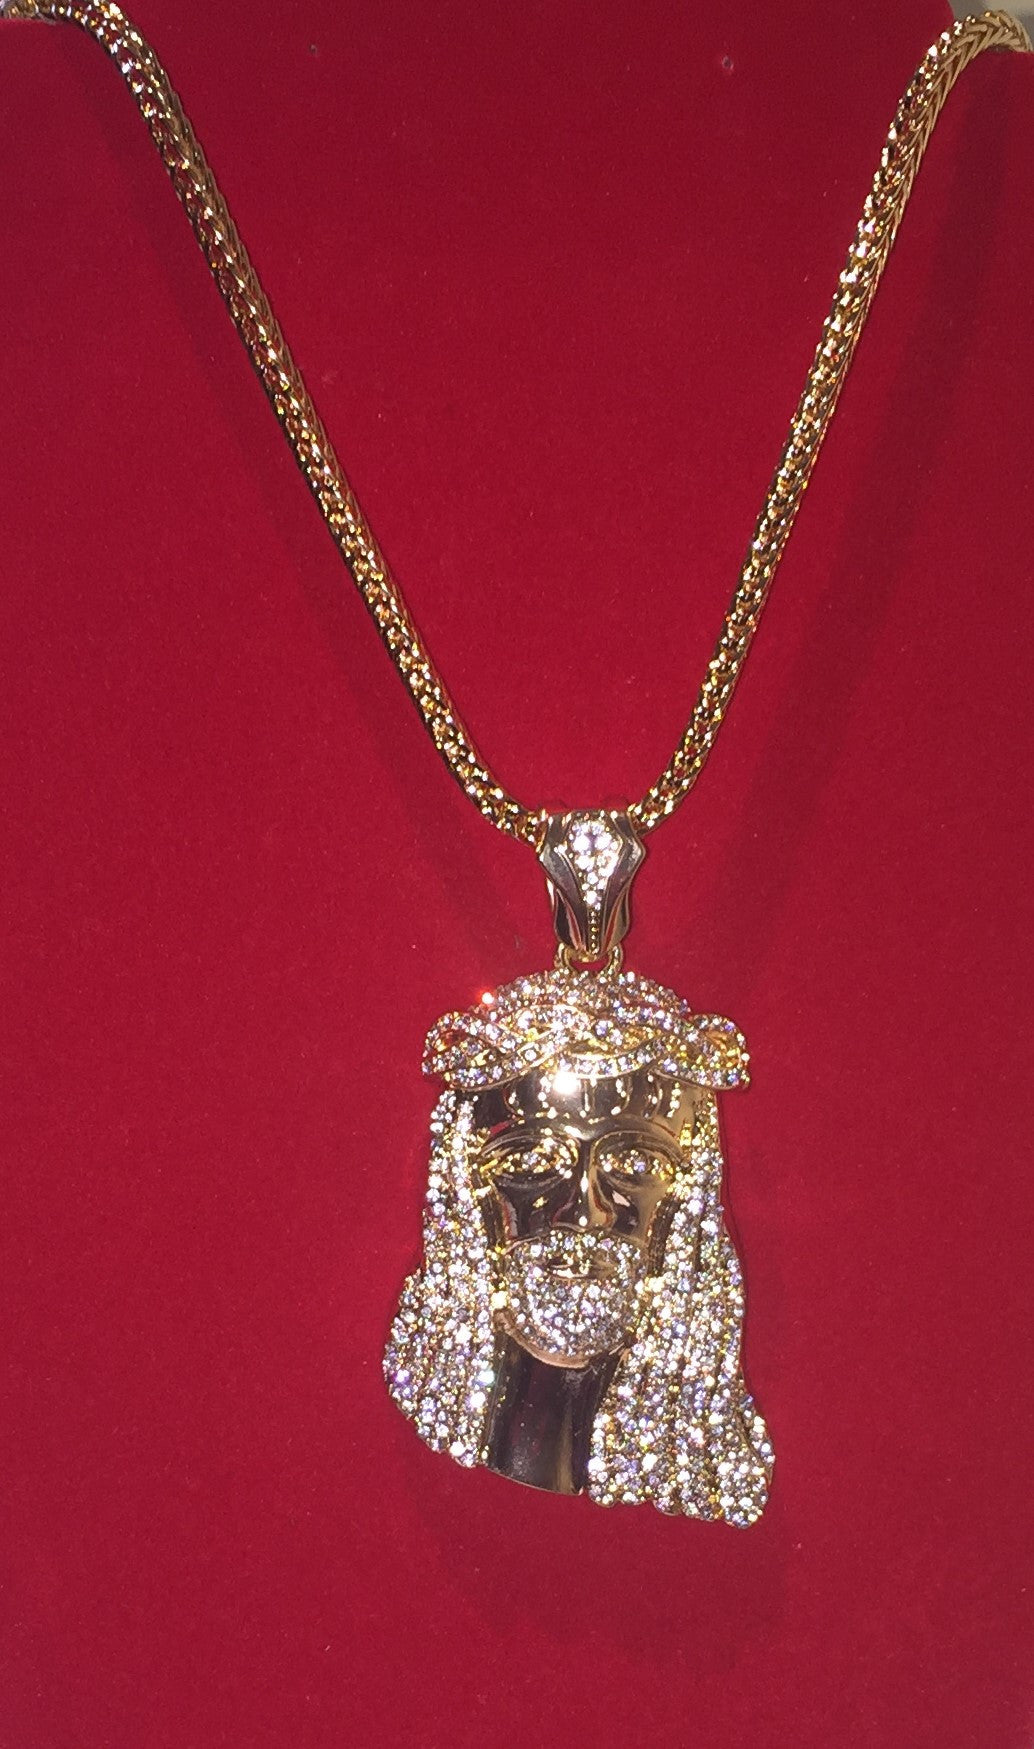 Exclusive 18k Gold Plated Braided Crown Jesus Piece On 32inch Franco Chain